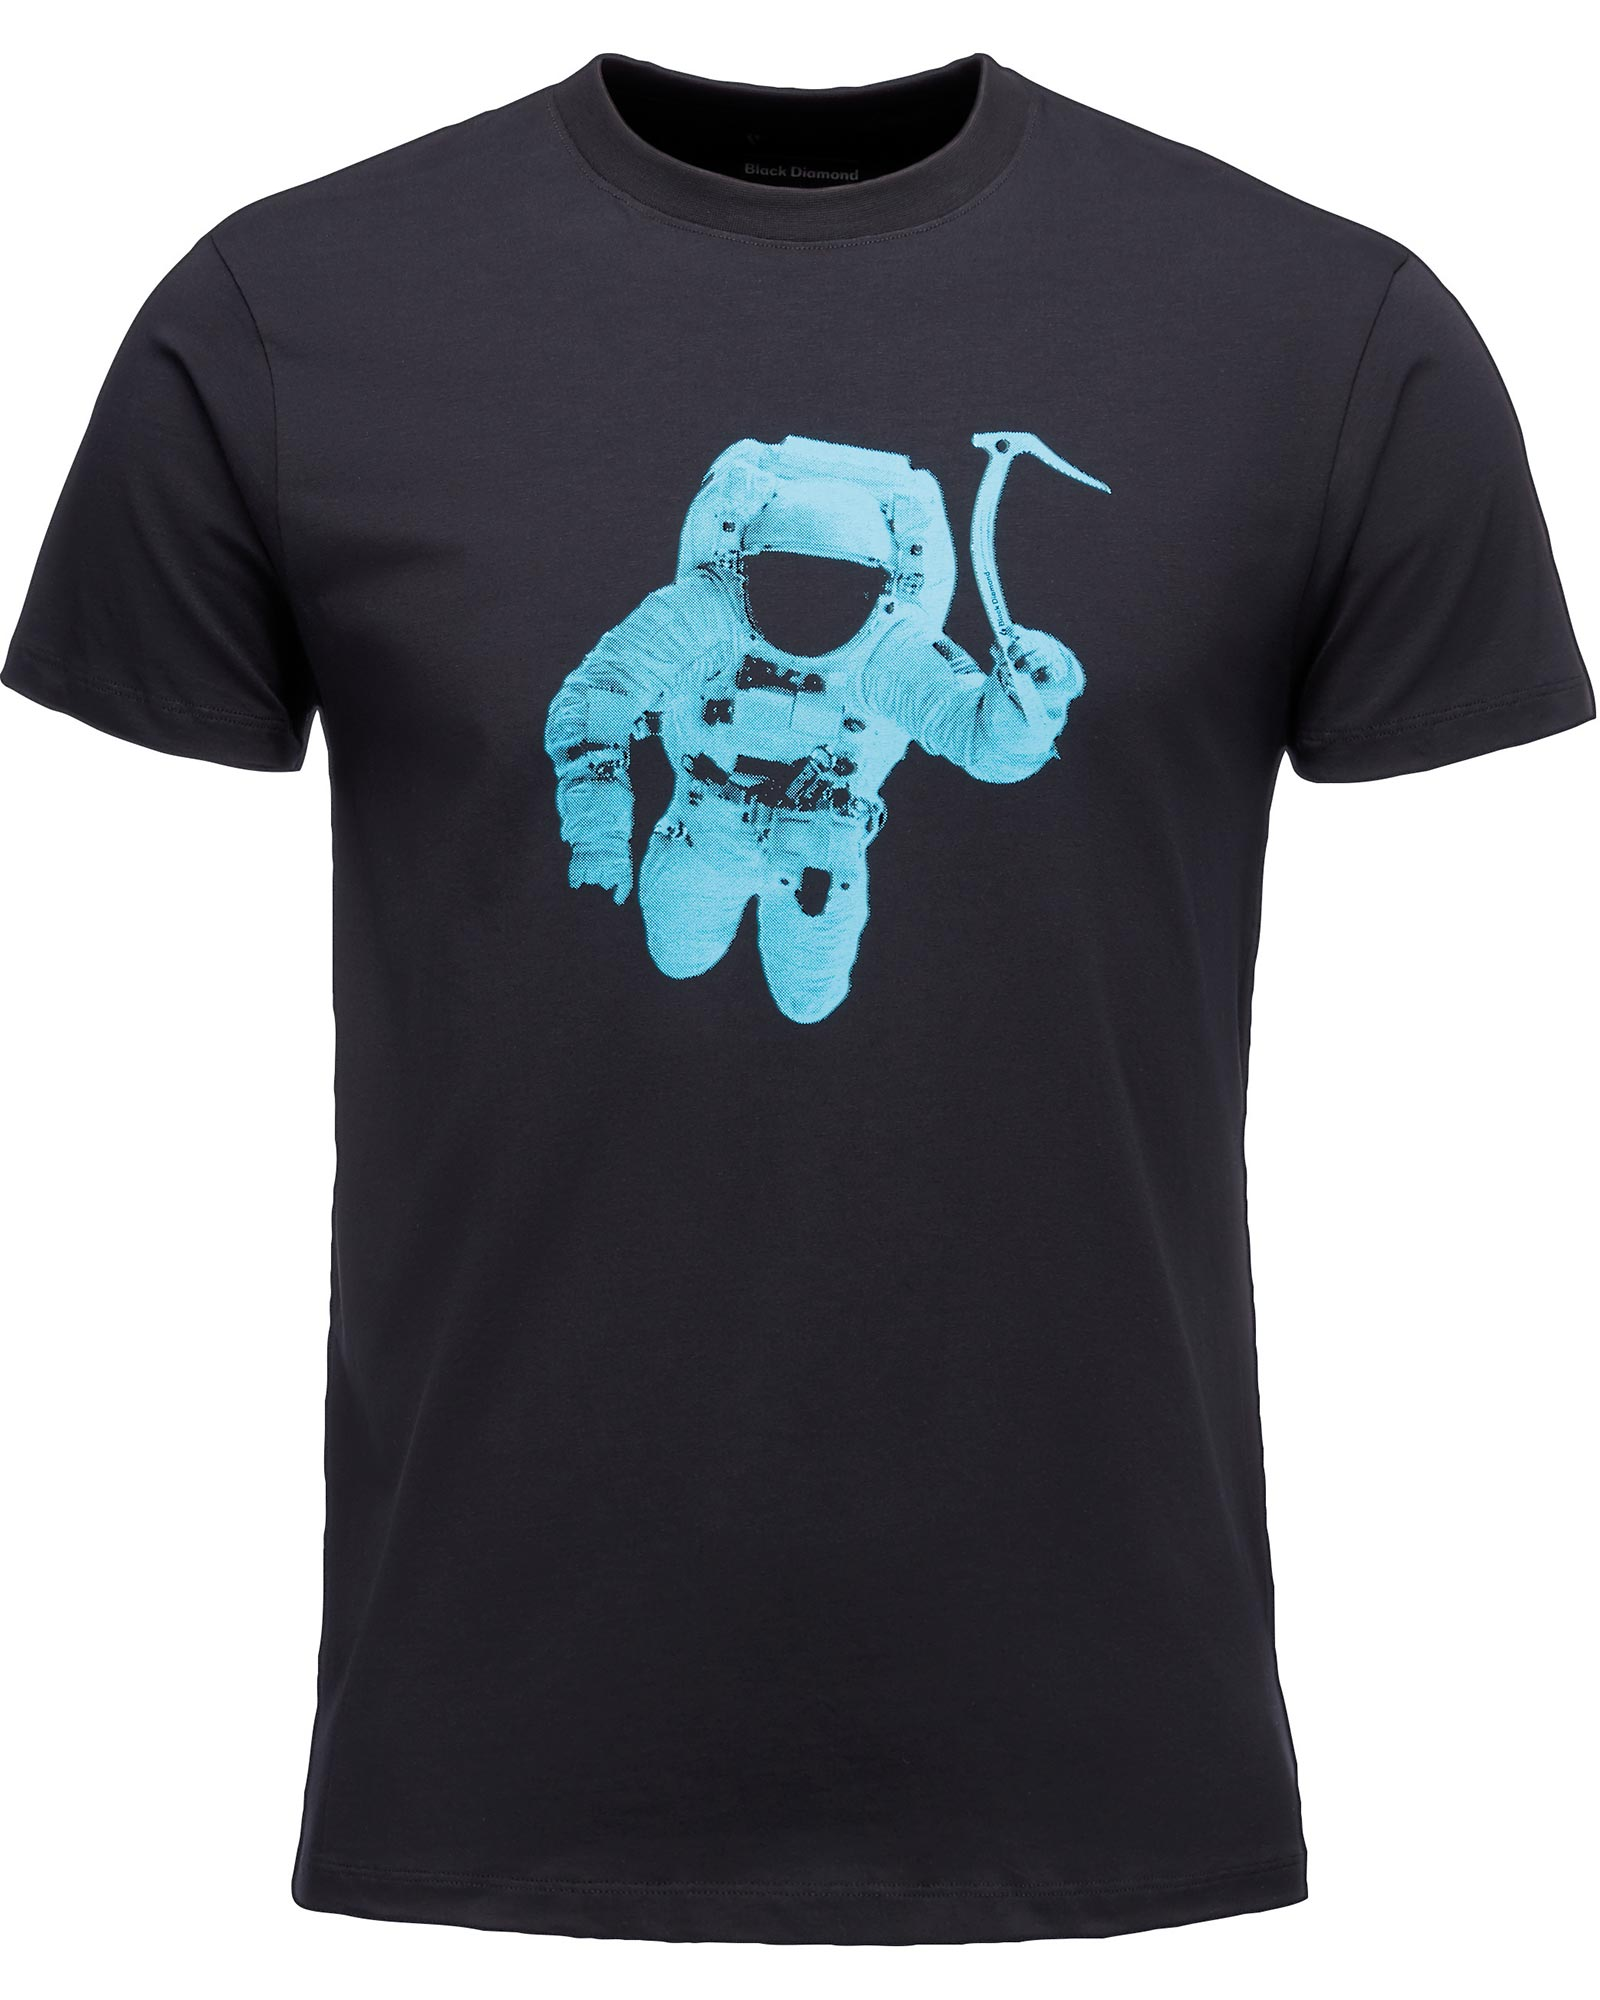 Black Diamond Men's Spaceshot T-Shirt 0